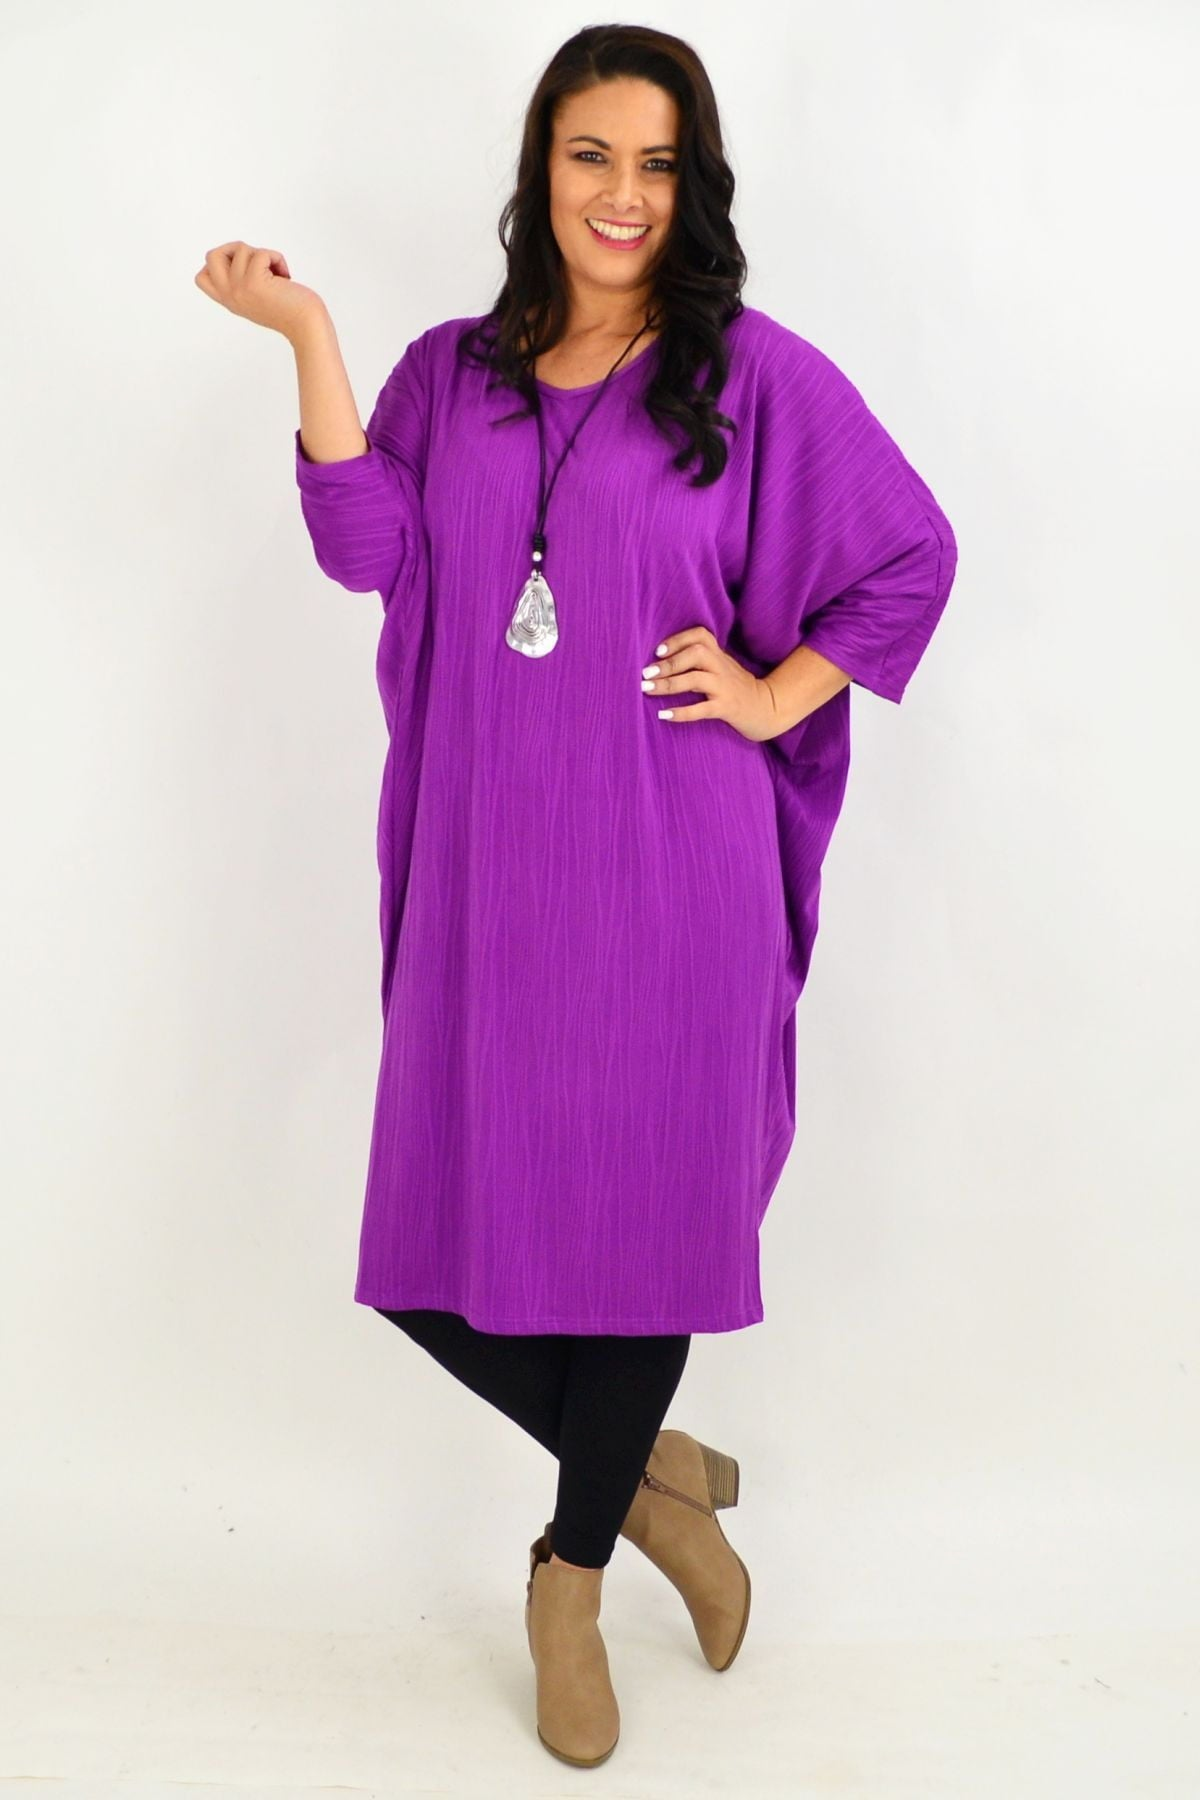 Purple Ribbed Oversized Tunic Dress | I Love Tunics | Tunic Tops | Tunic | Tunic Dresses  | womens clothing online